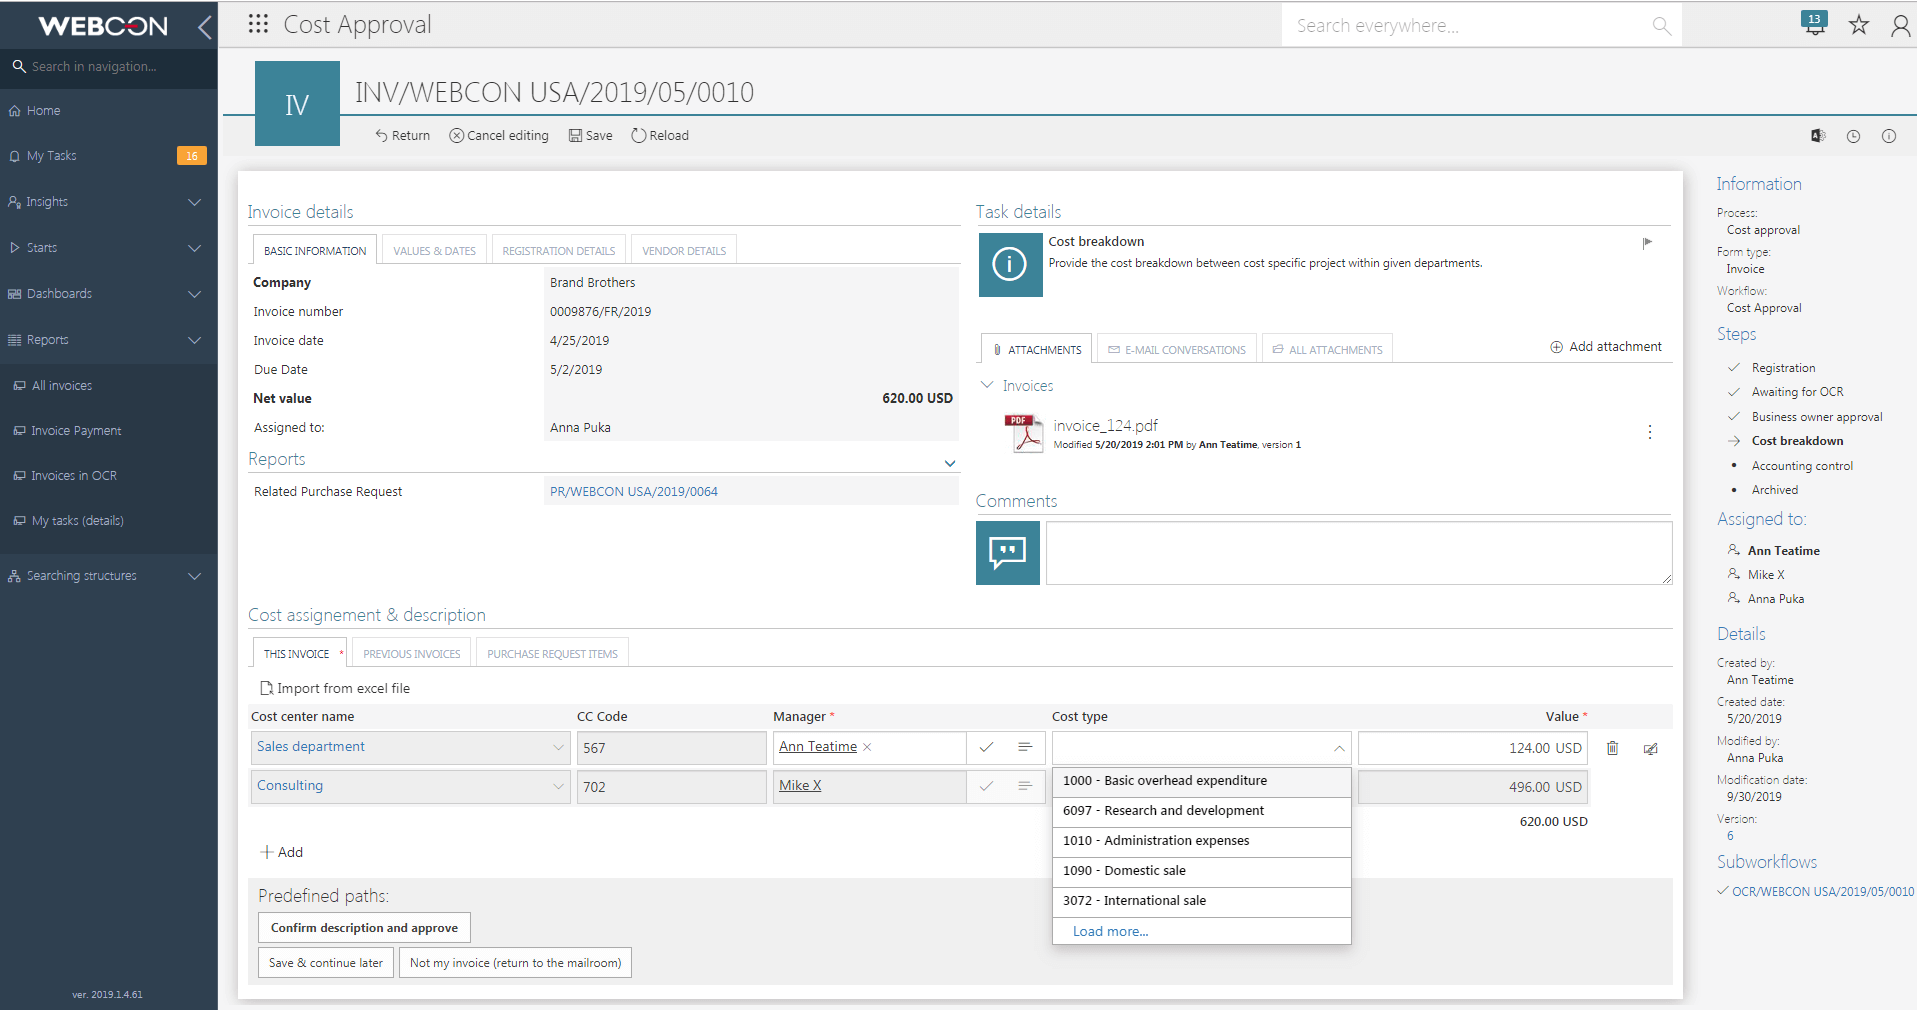 Cost invoice attribution in WEBCON BPS